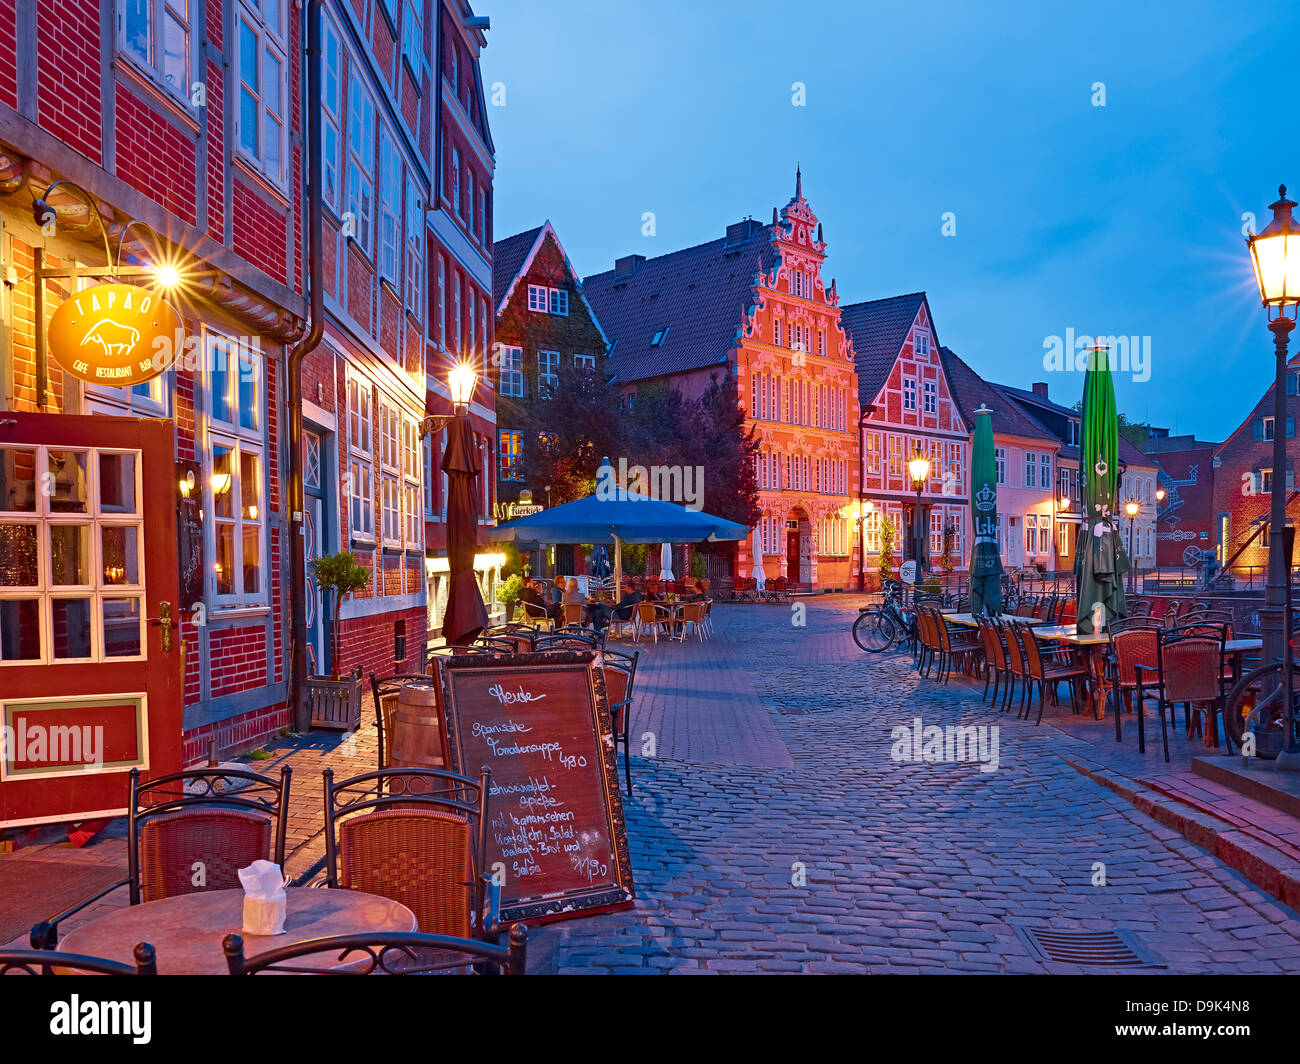 Houses at Old Hanse harbour and Hintze House, Hanseatic city of Stade, Lower Saxony, Germany - Stock Image